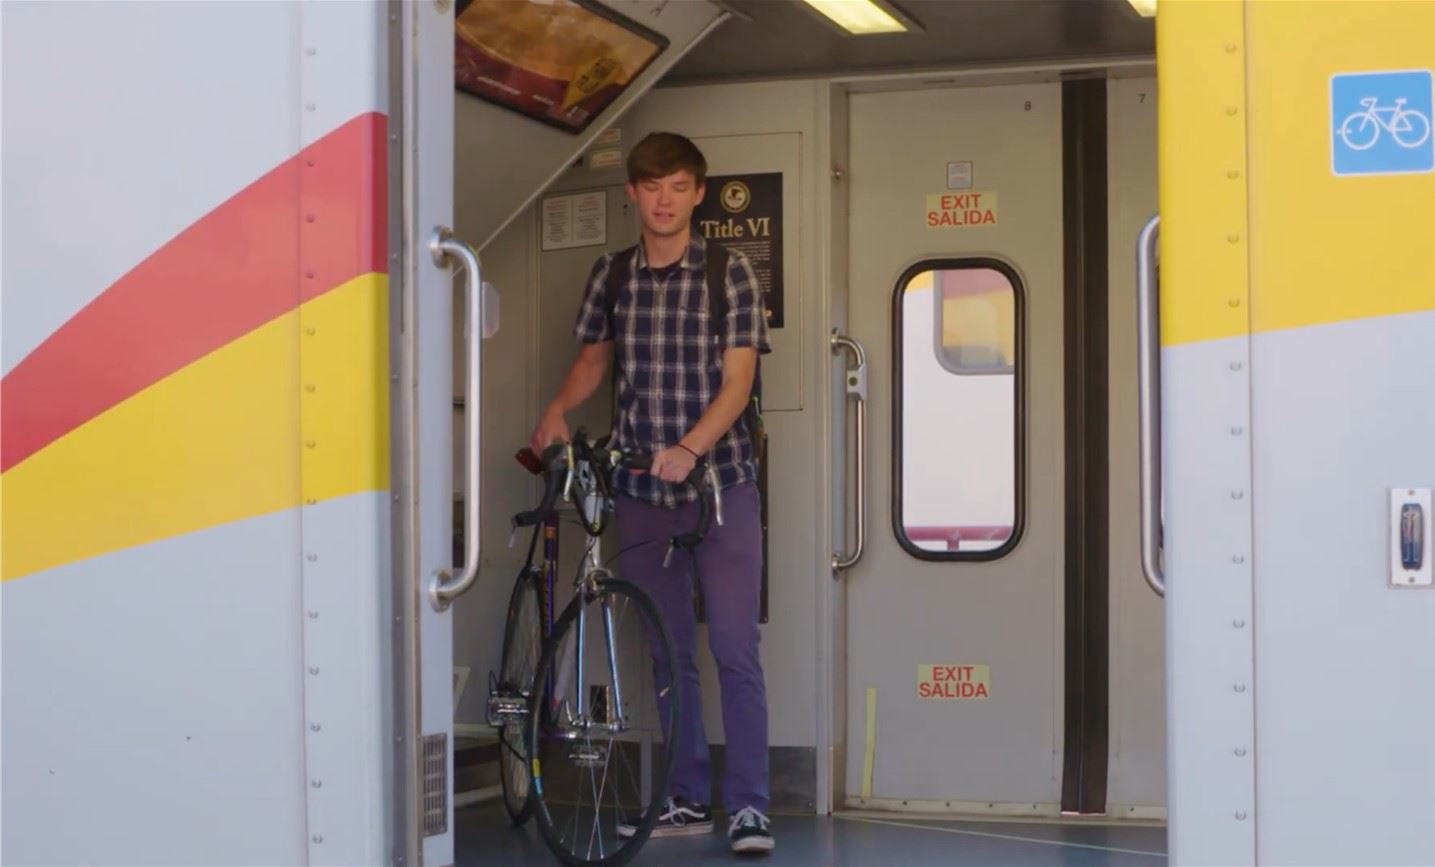 Man with a bicycle on the train